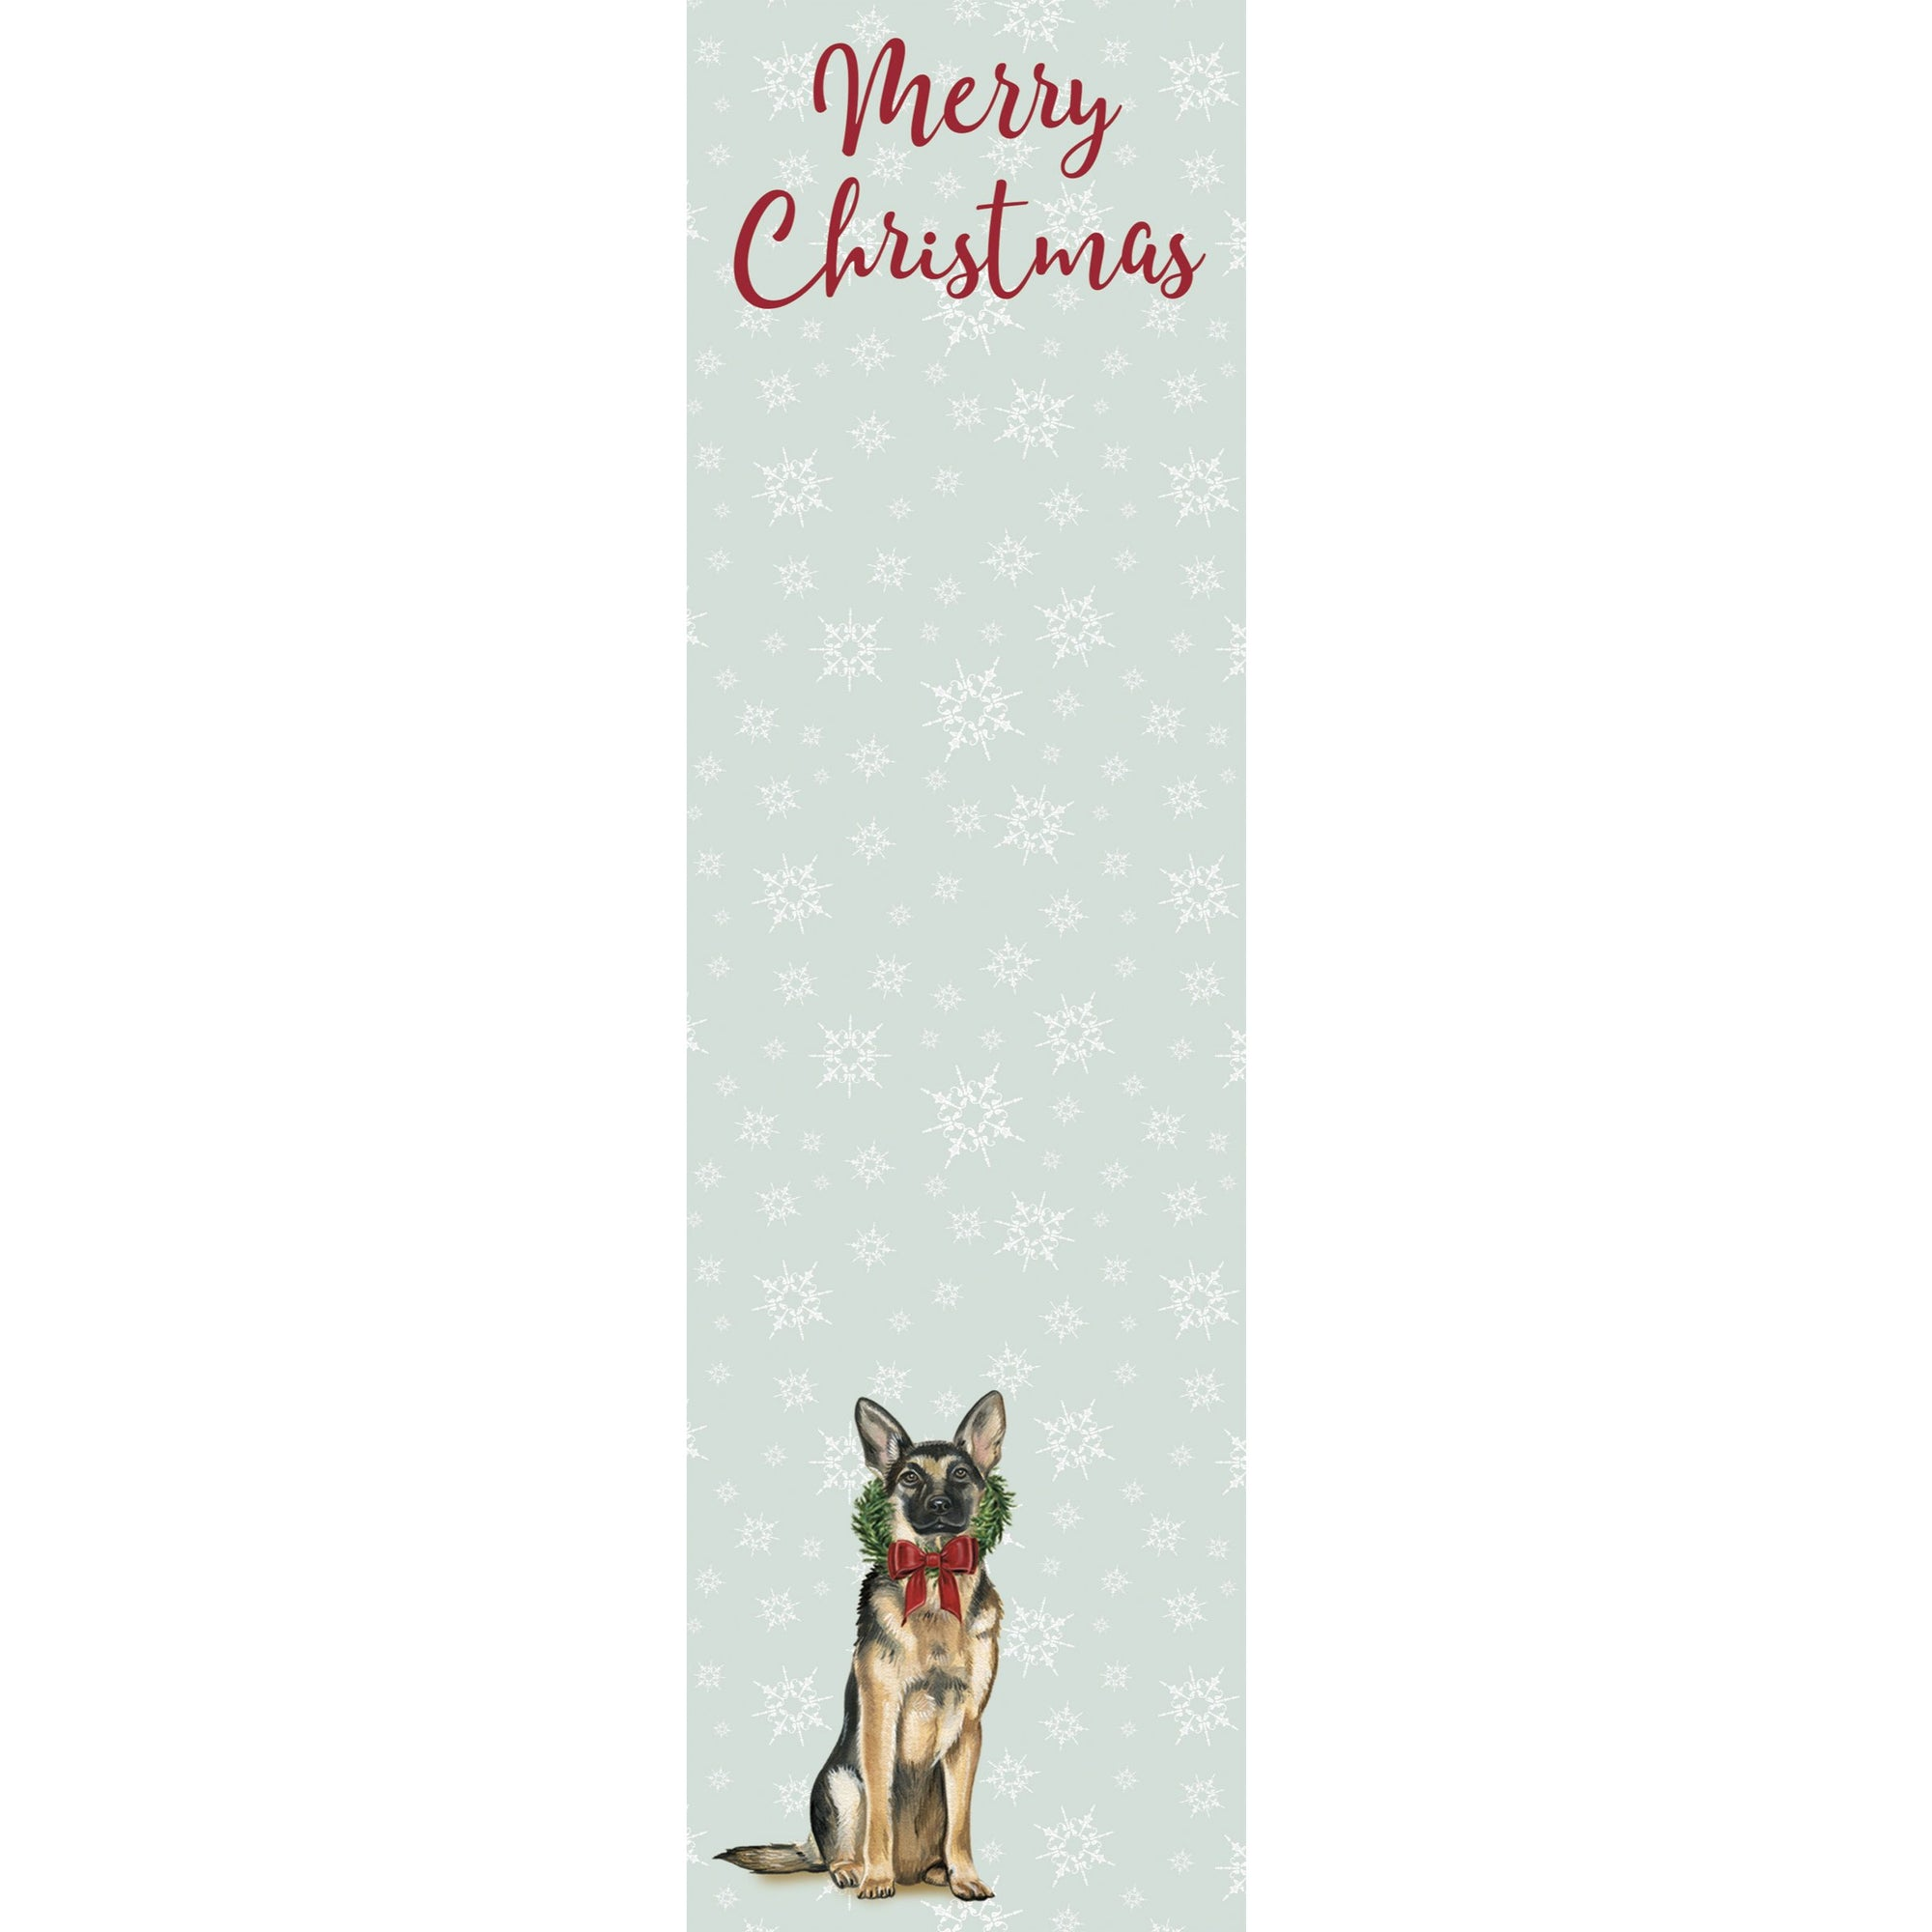 Primitives by Kathy - Holiday List Notepad, German Shepherd